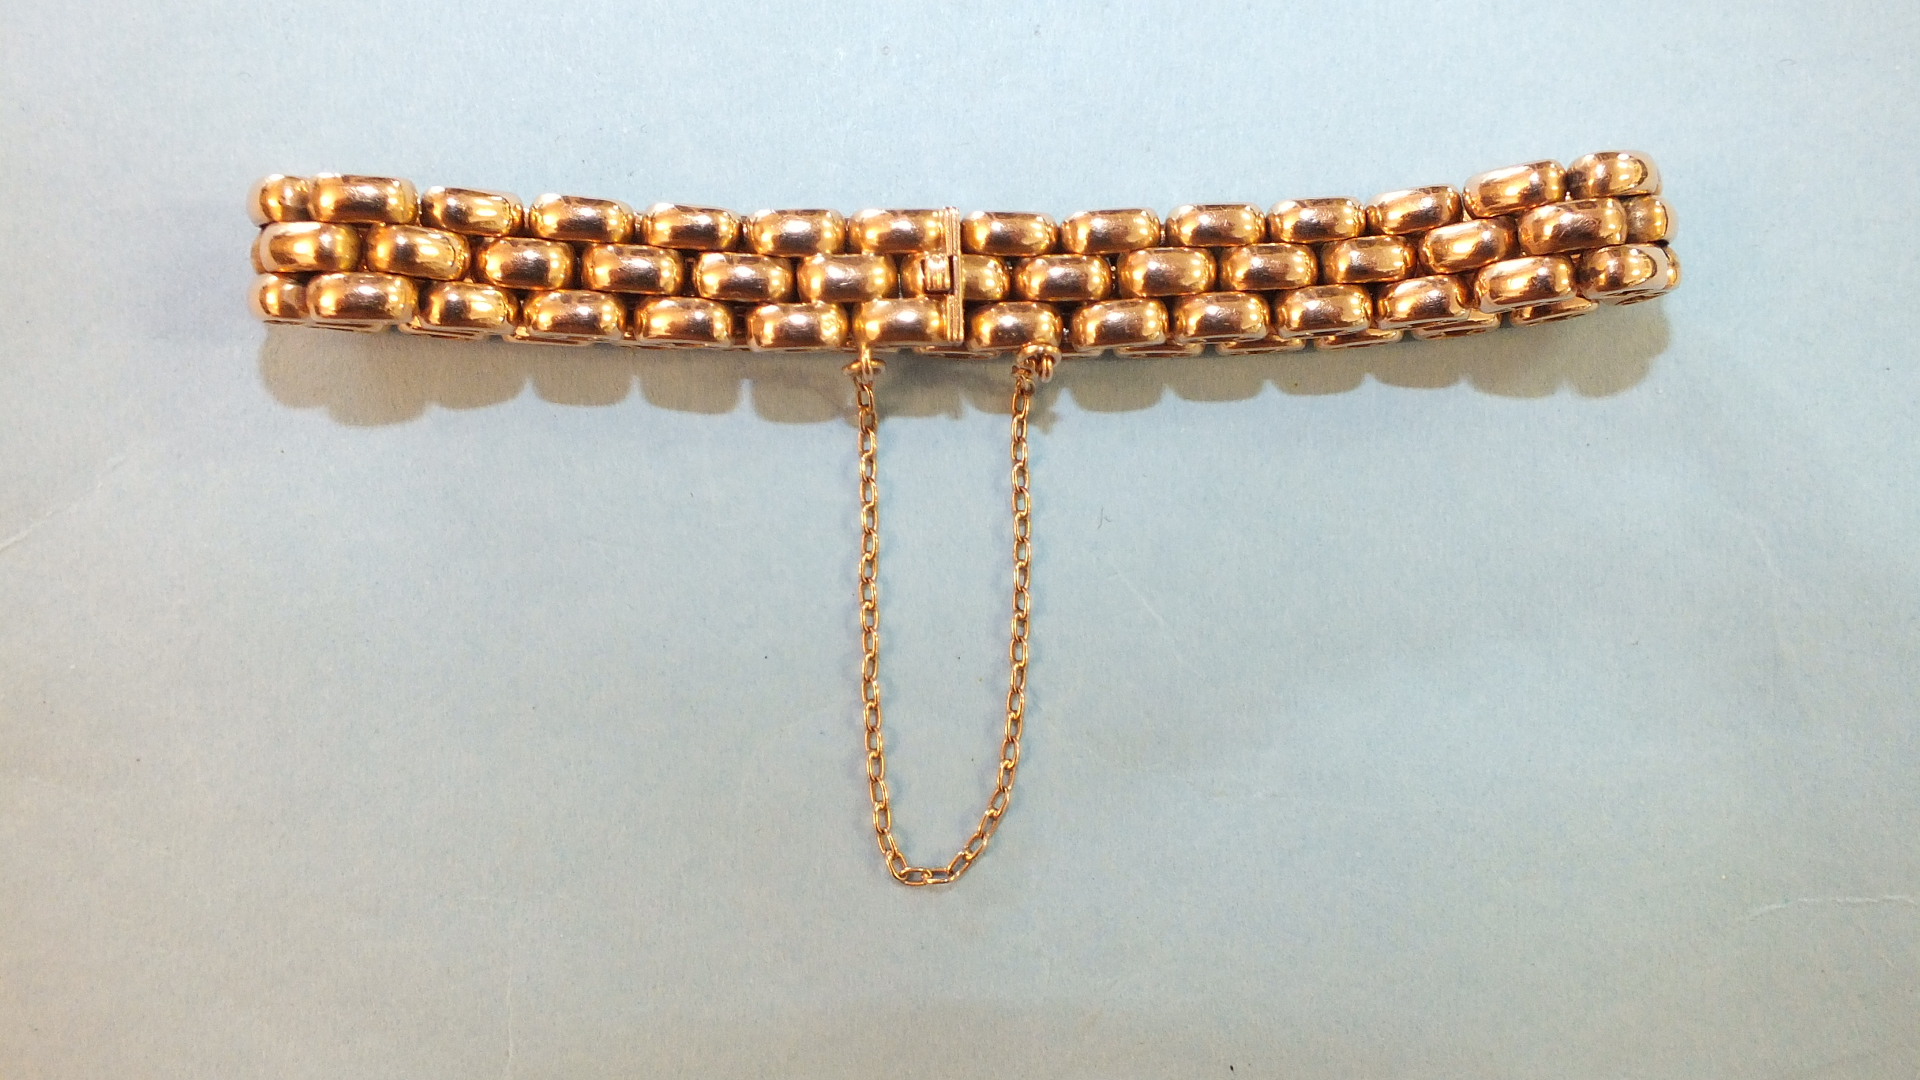 Lot 219 - A rose gold bracelet of rounded brick links with concealed clasp and safety chain, 26.5g.